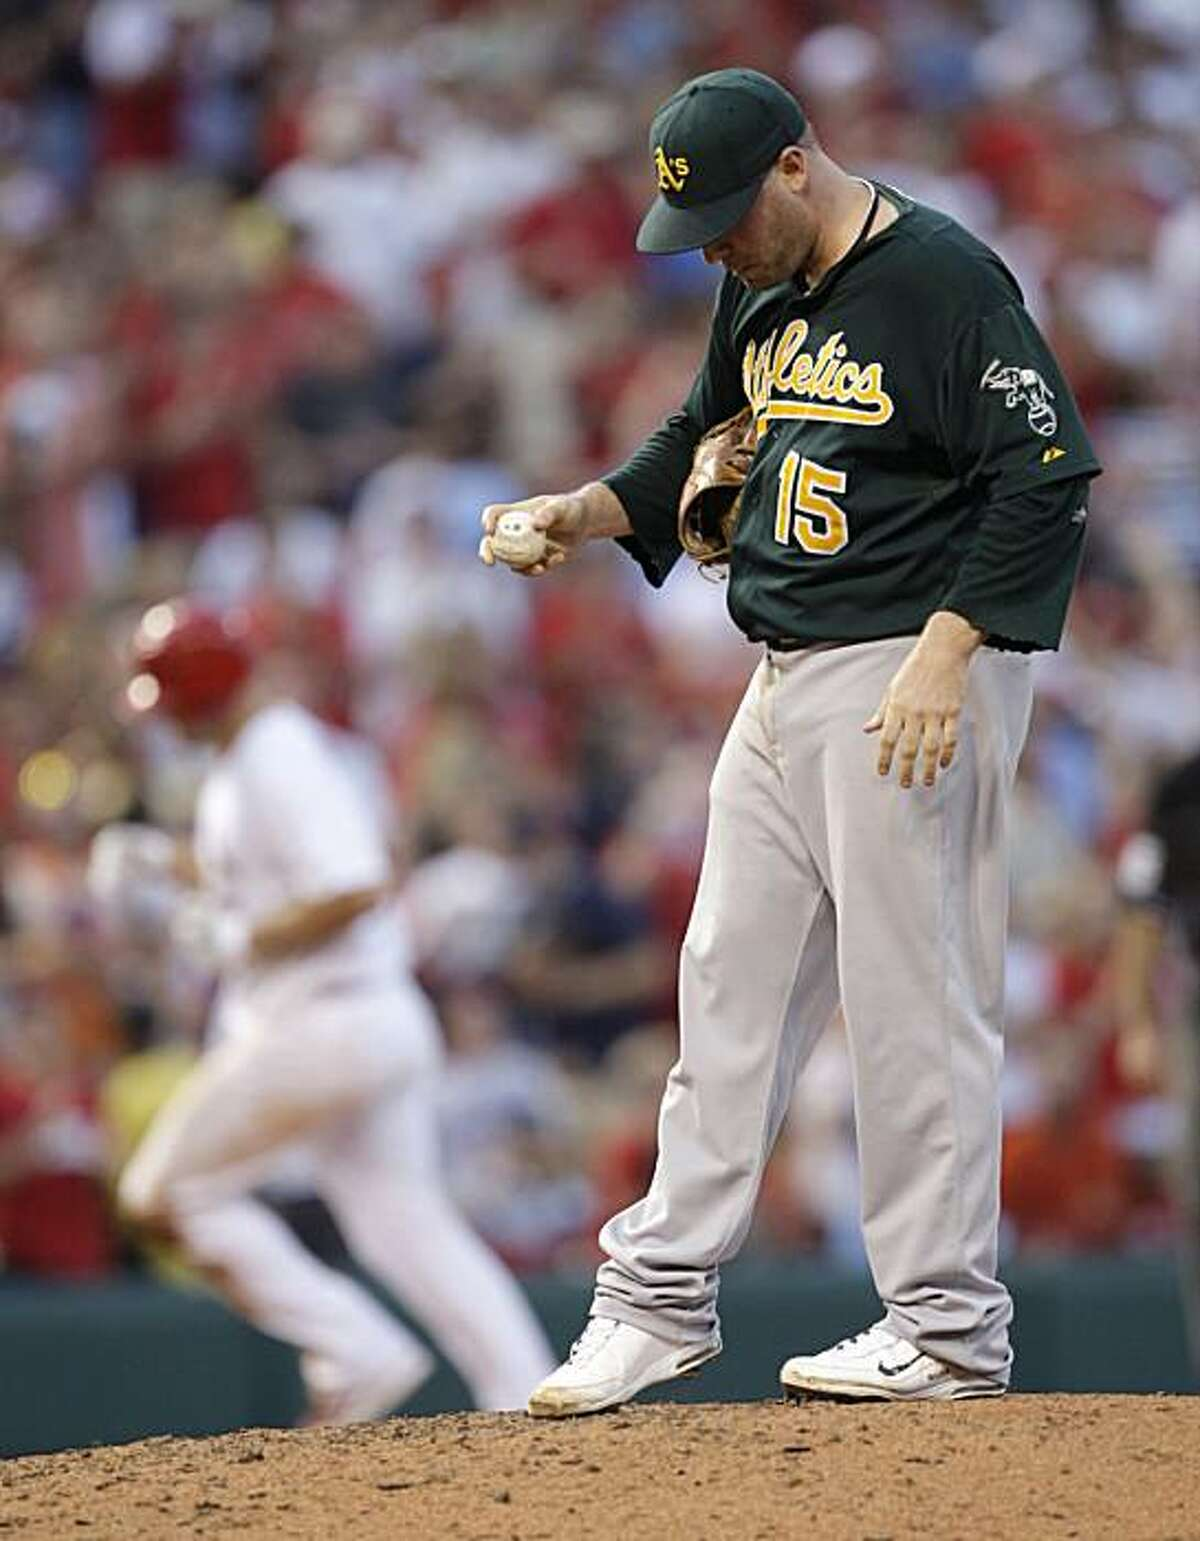 Oakland Athletics starting pitcher Ben Sheets (15) kicks the mound as St. Louis Cardinals' Matt Holliday, background, circles the bases after hitting a two-run home run in the seventh inning of a baseball game, Saturday, June 19, 2010, in St. Louis.